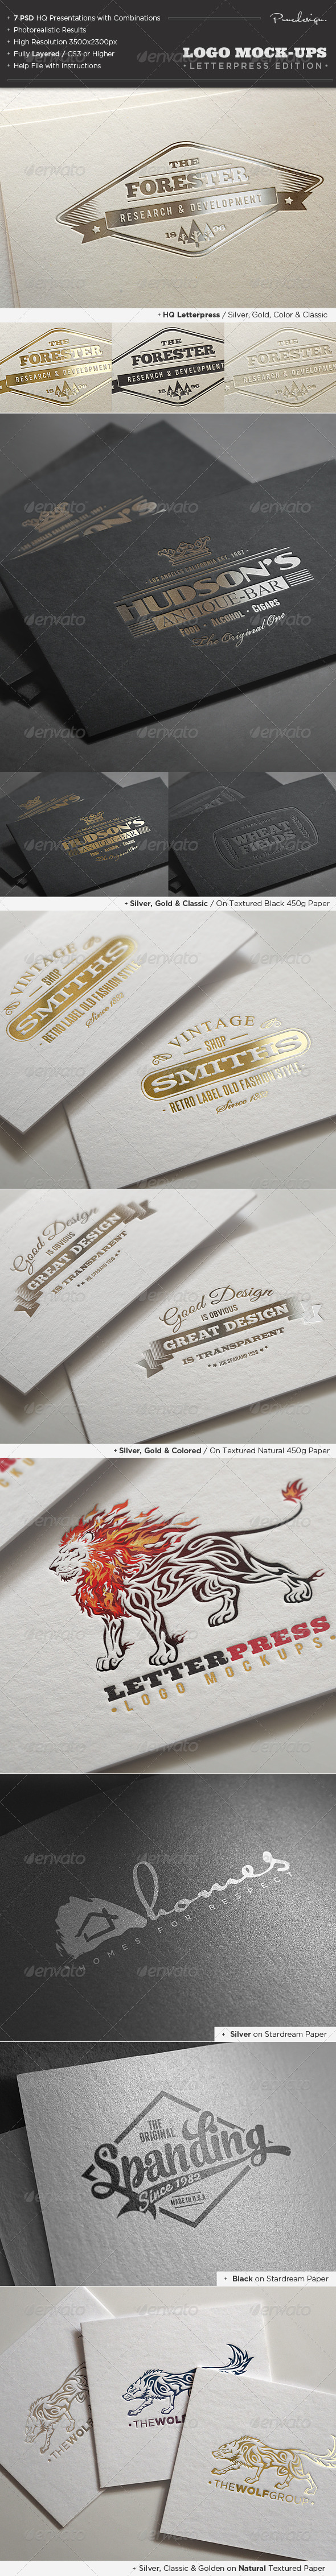 Logo Mock-Ups / Letterpress Edition - Logo Product Mock-Ups